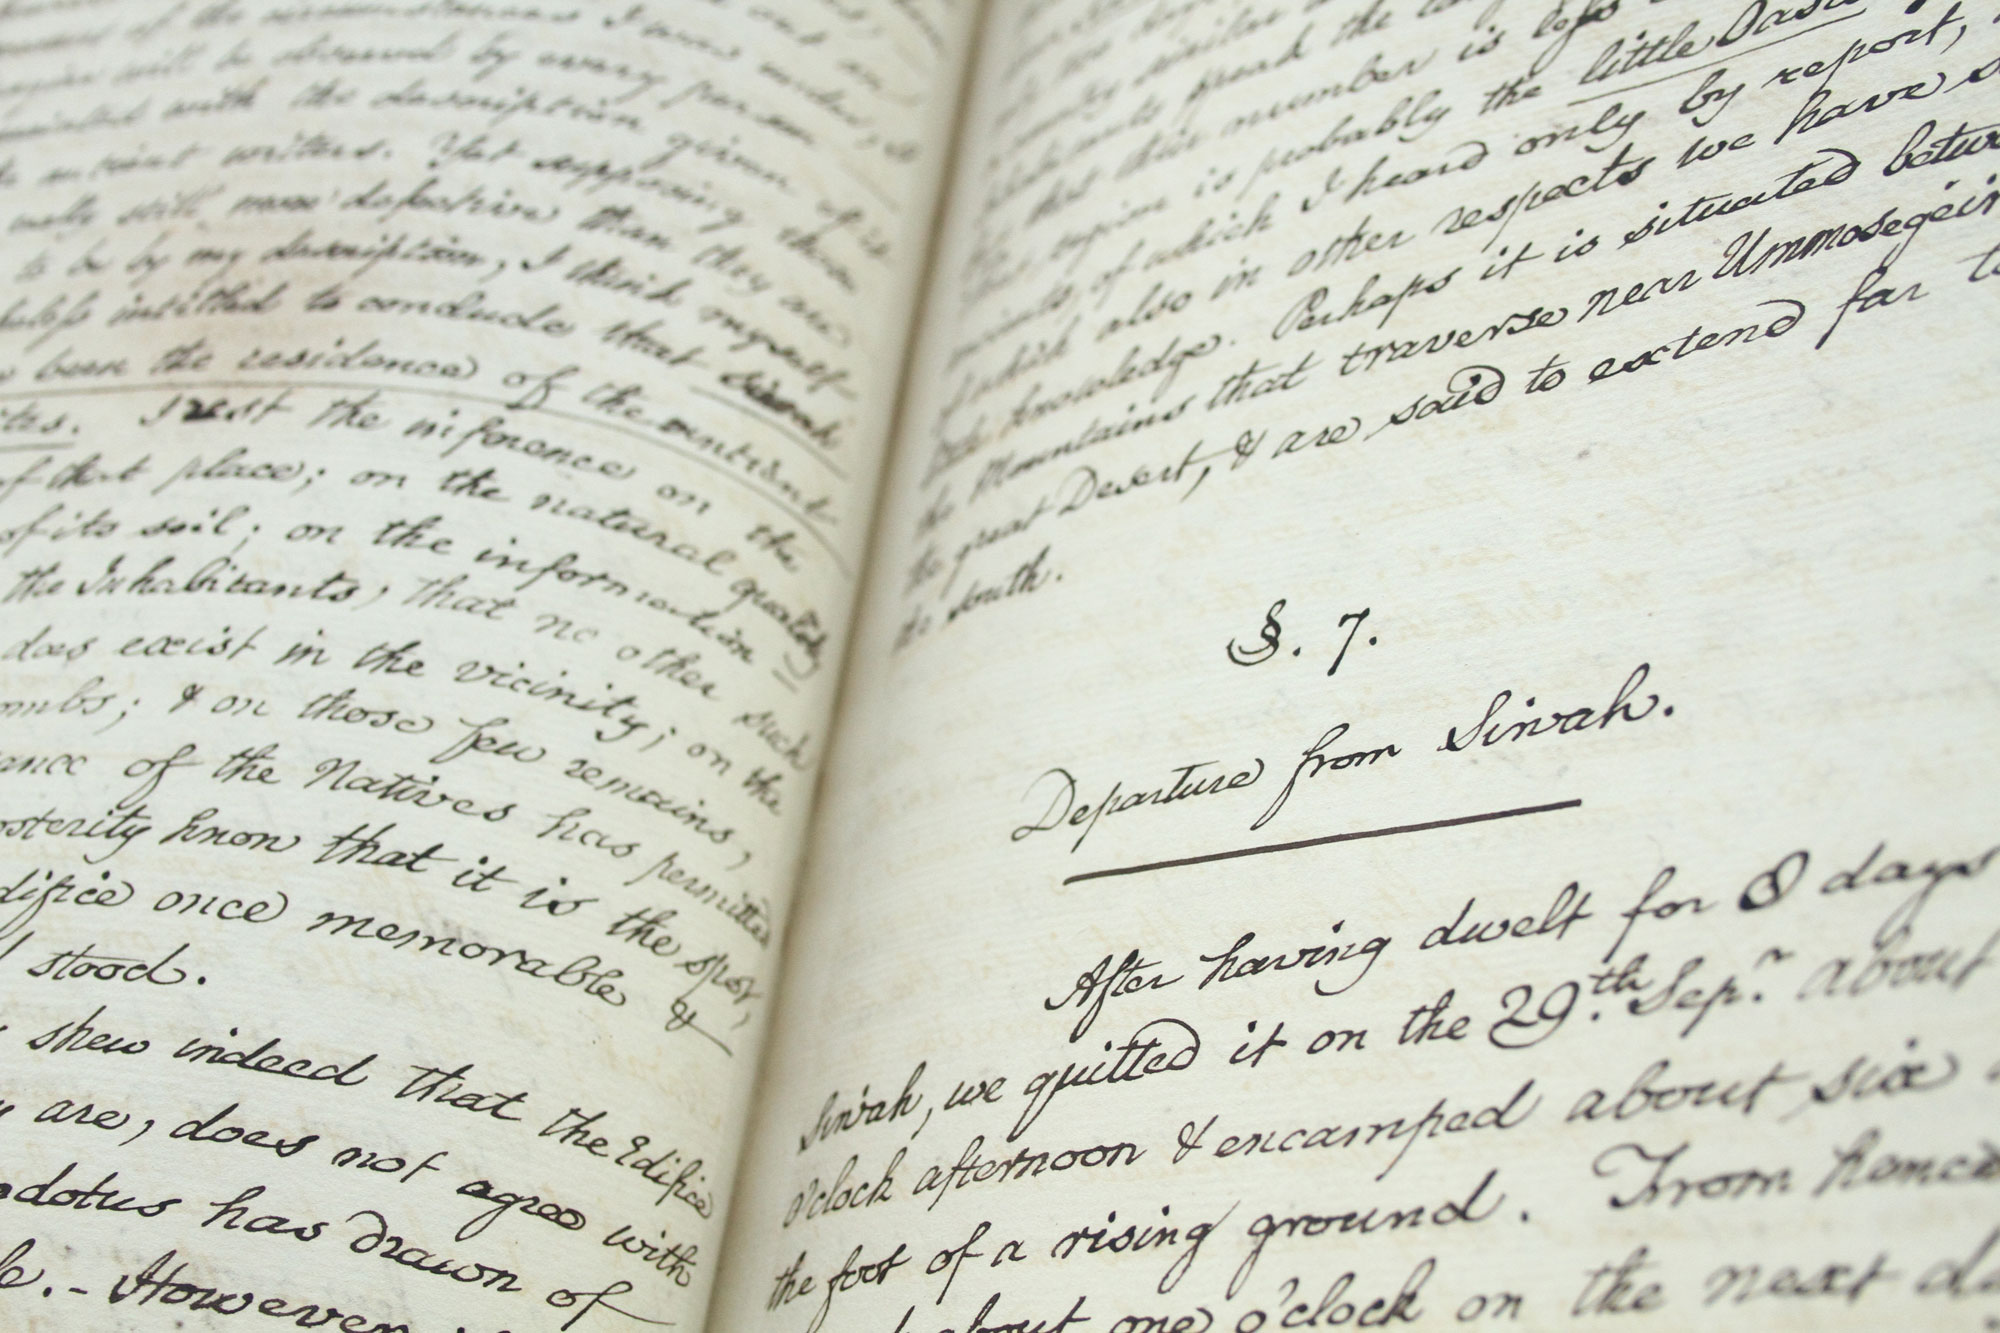 A close up of two pages of text written in pen - the words are impossible to read but the book looks old.